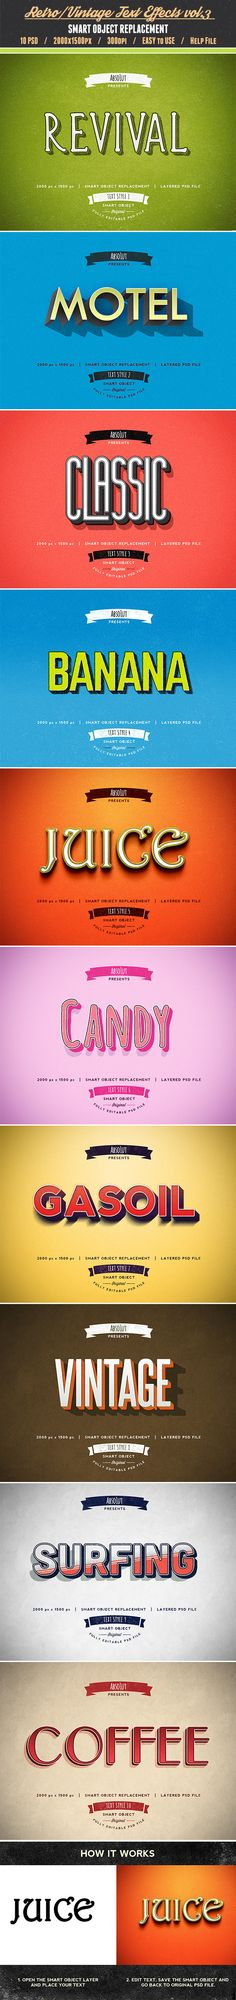 Retro Vintage Text Effects vol.3 - Text Effects Actions